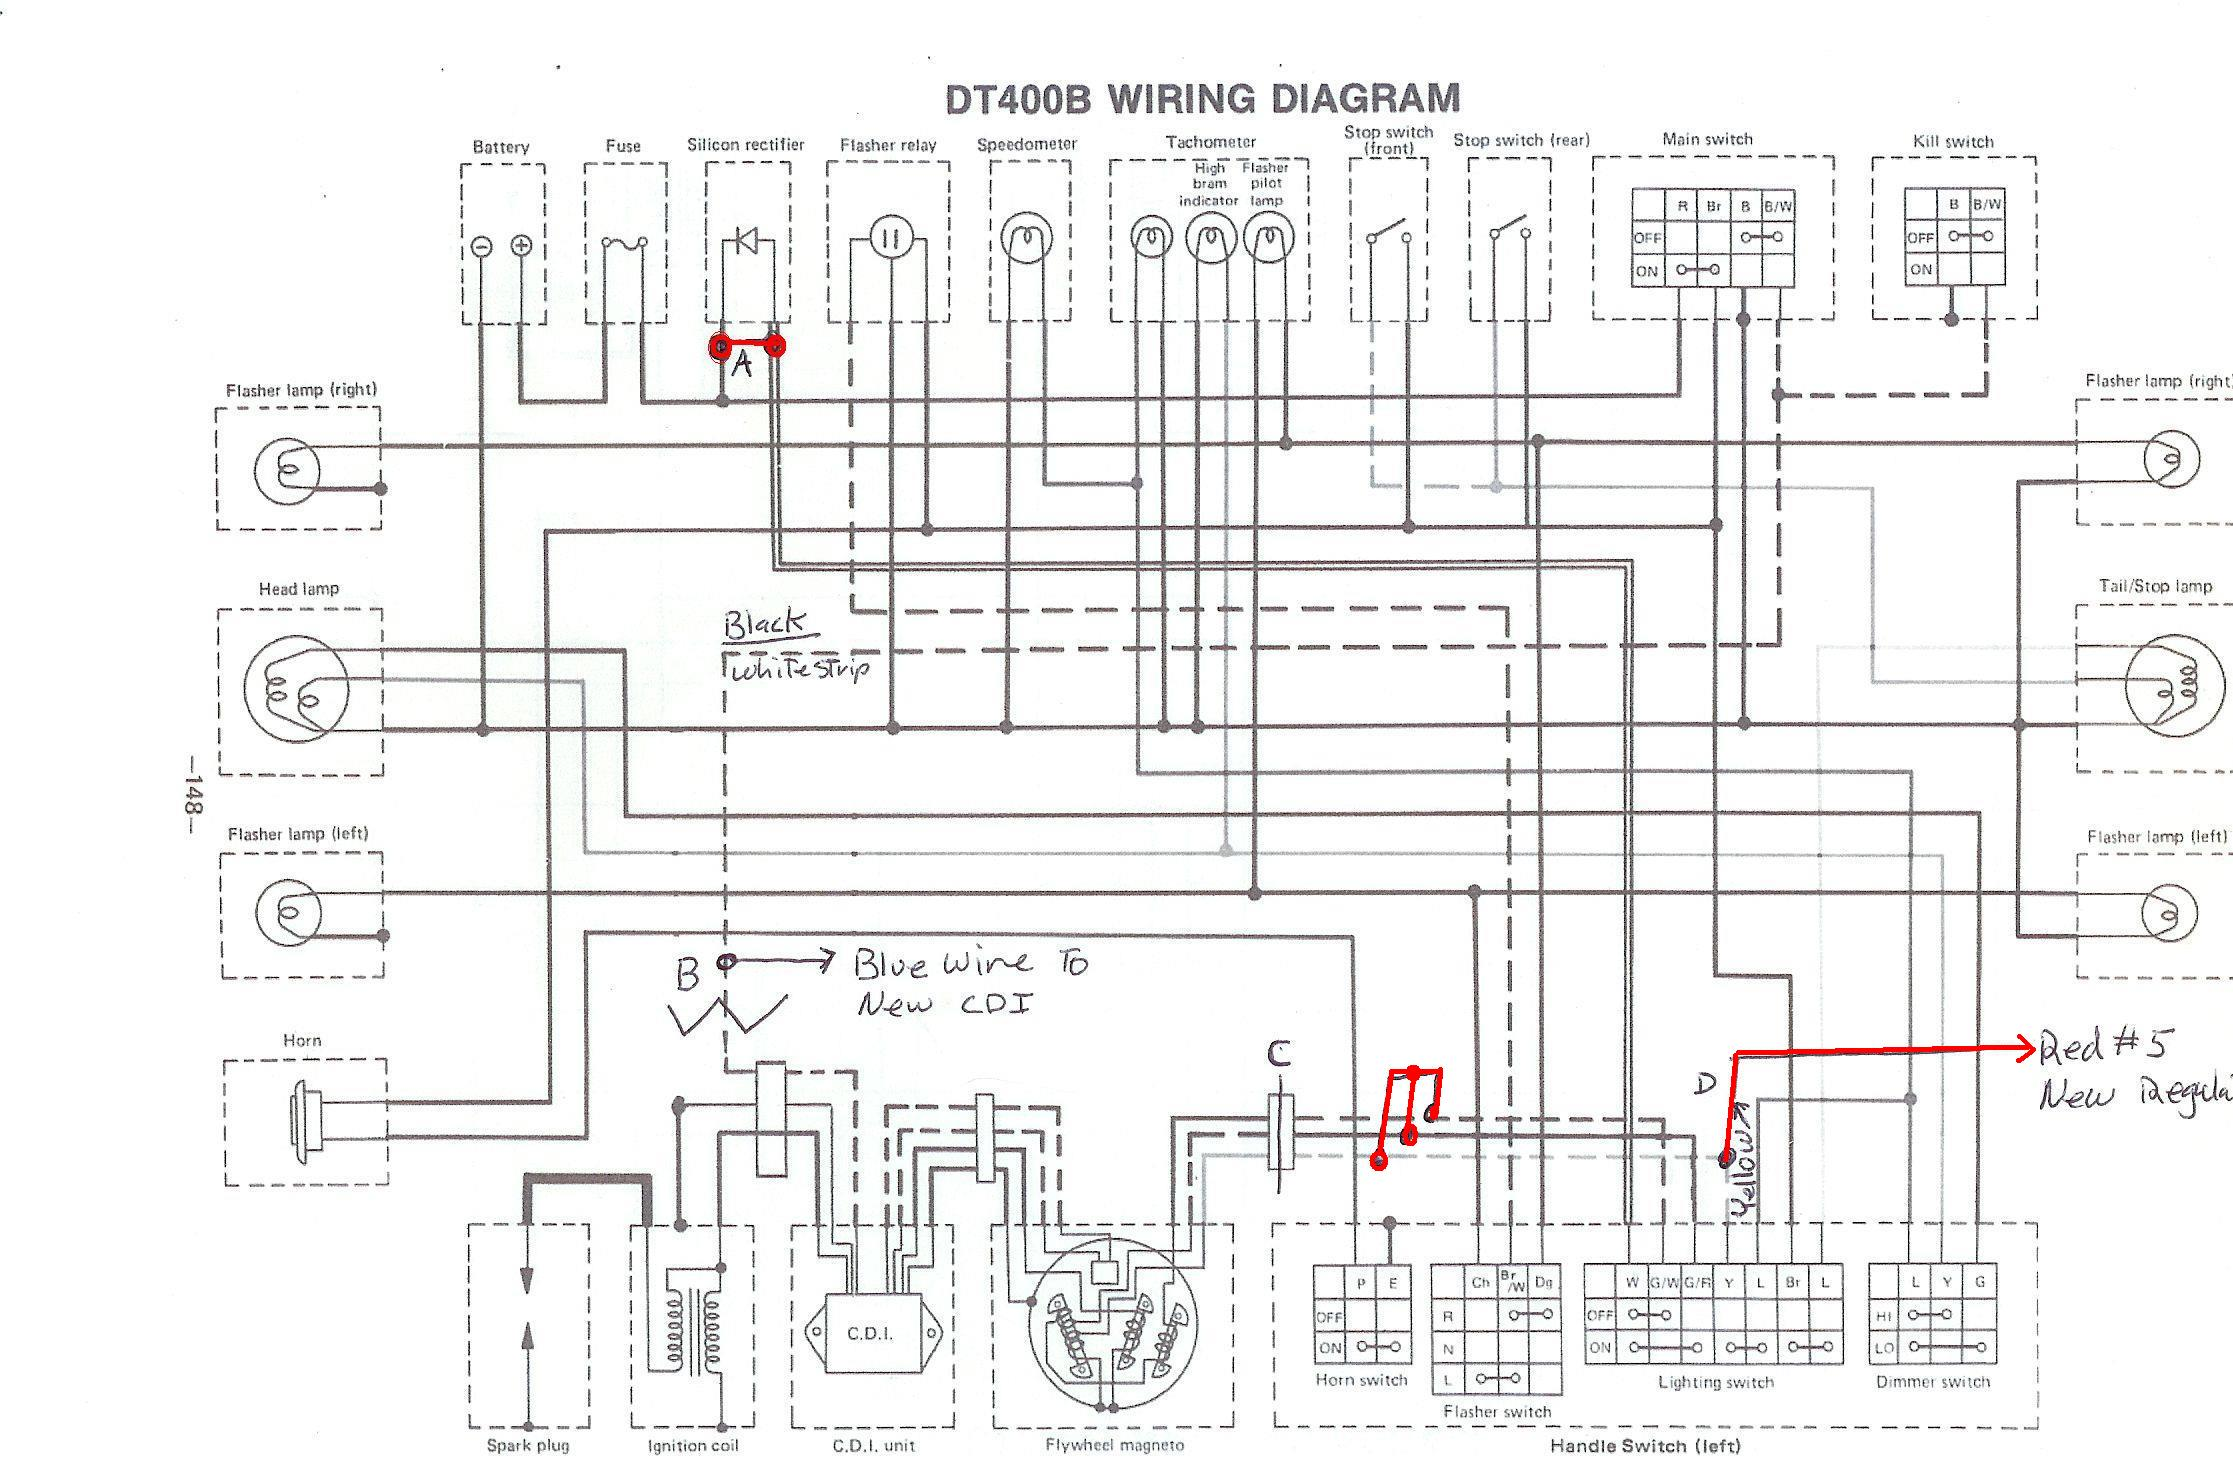 1980 yamaha dt 100 wiring machine repair manual  1980 yamaha dt 100 wiring #3